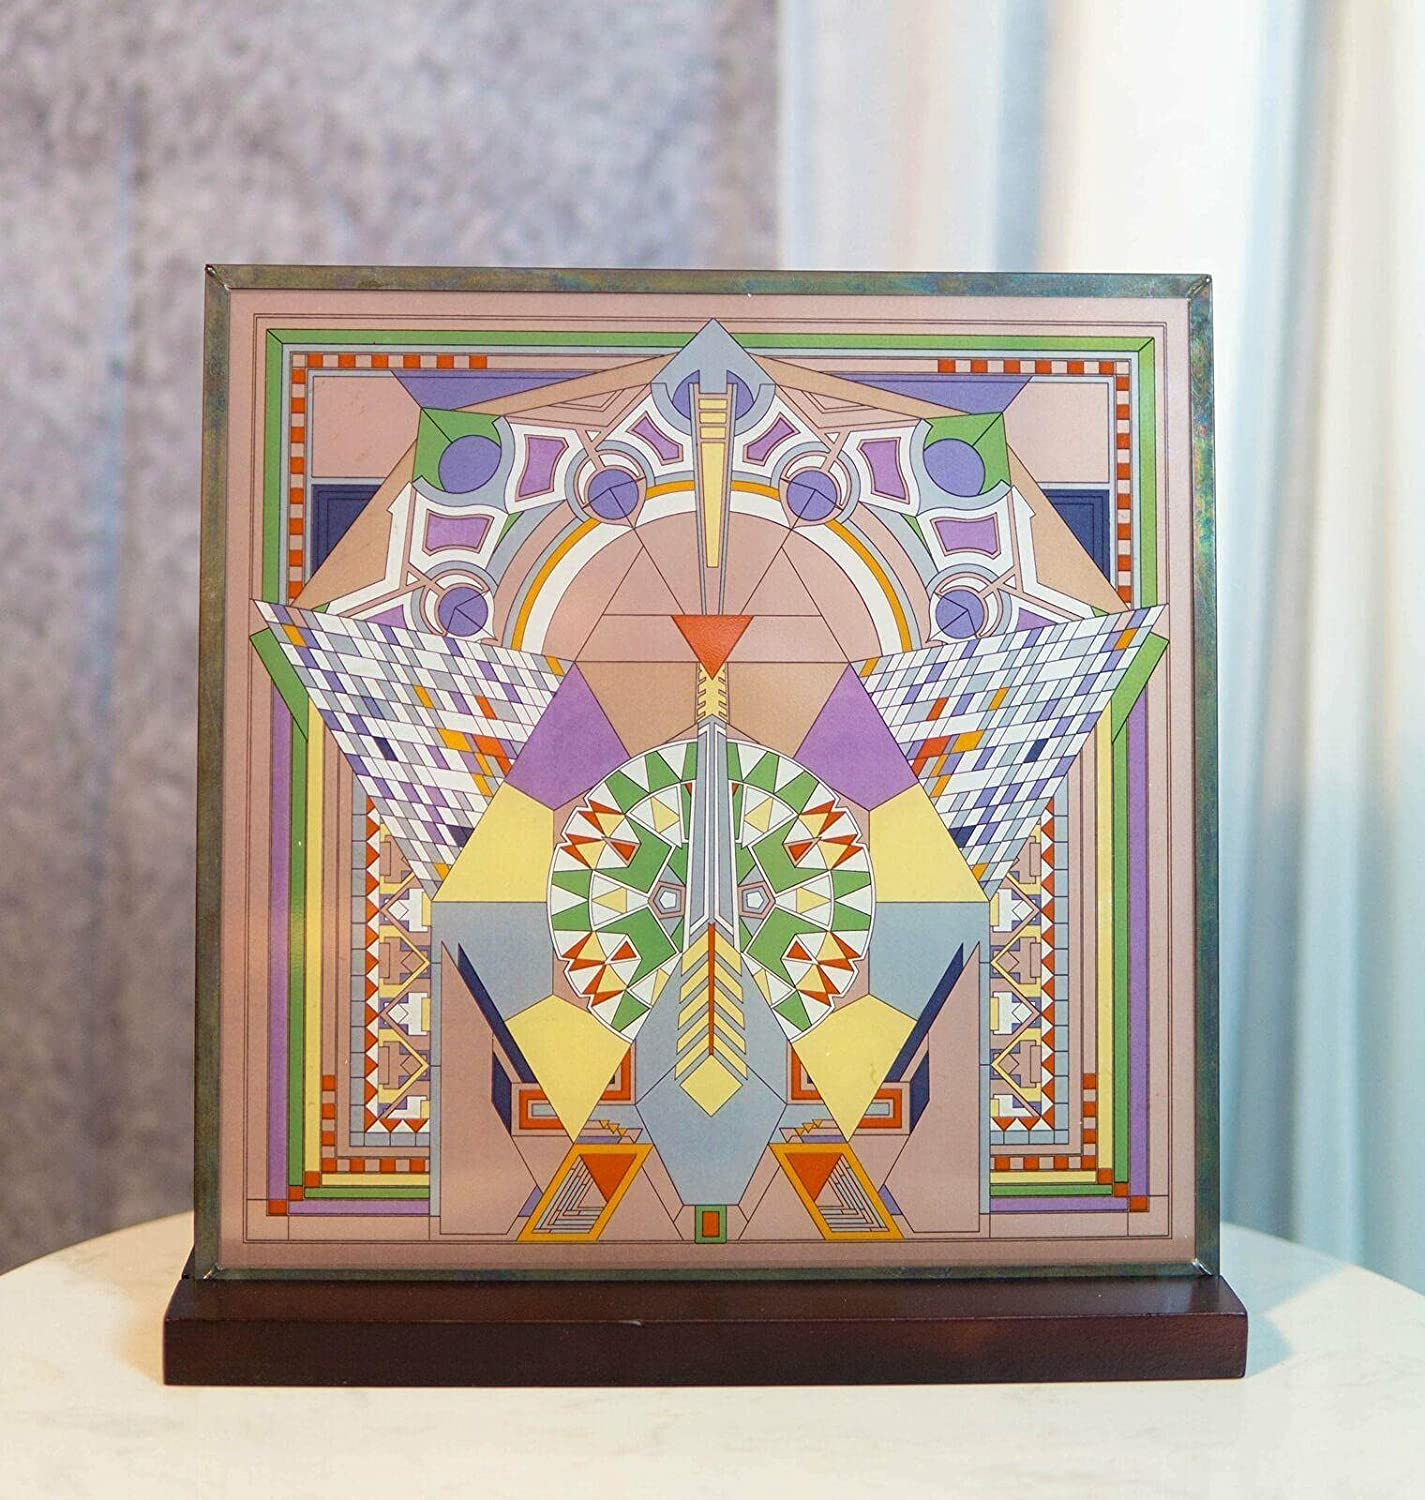 In a popularity Stained Glass Wall Desktop Plaque Decor Selling rankings S Garden Home